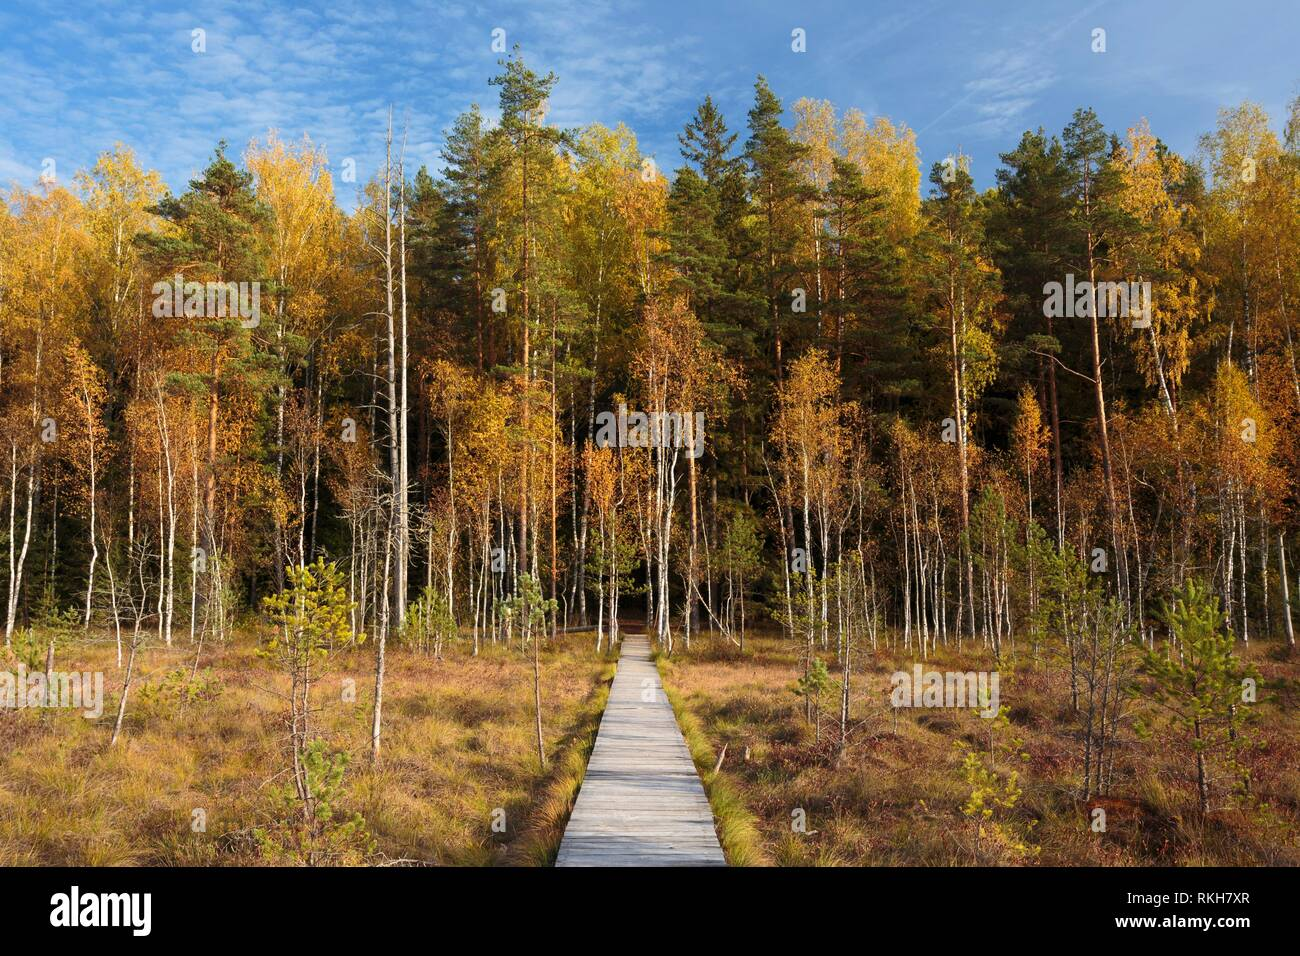 Wooden Path Way Pathway From Marsh Swamp To Forest. Autumn Season. Stock Photo